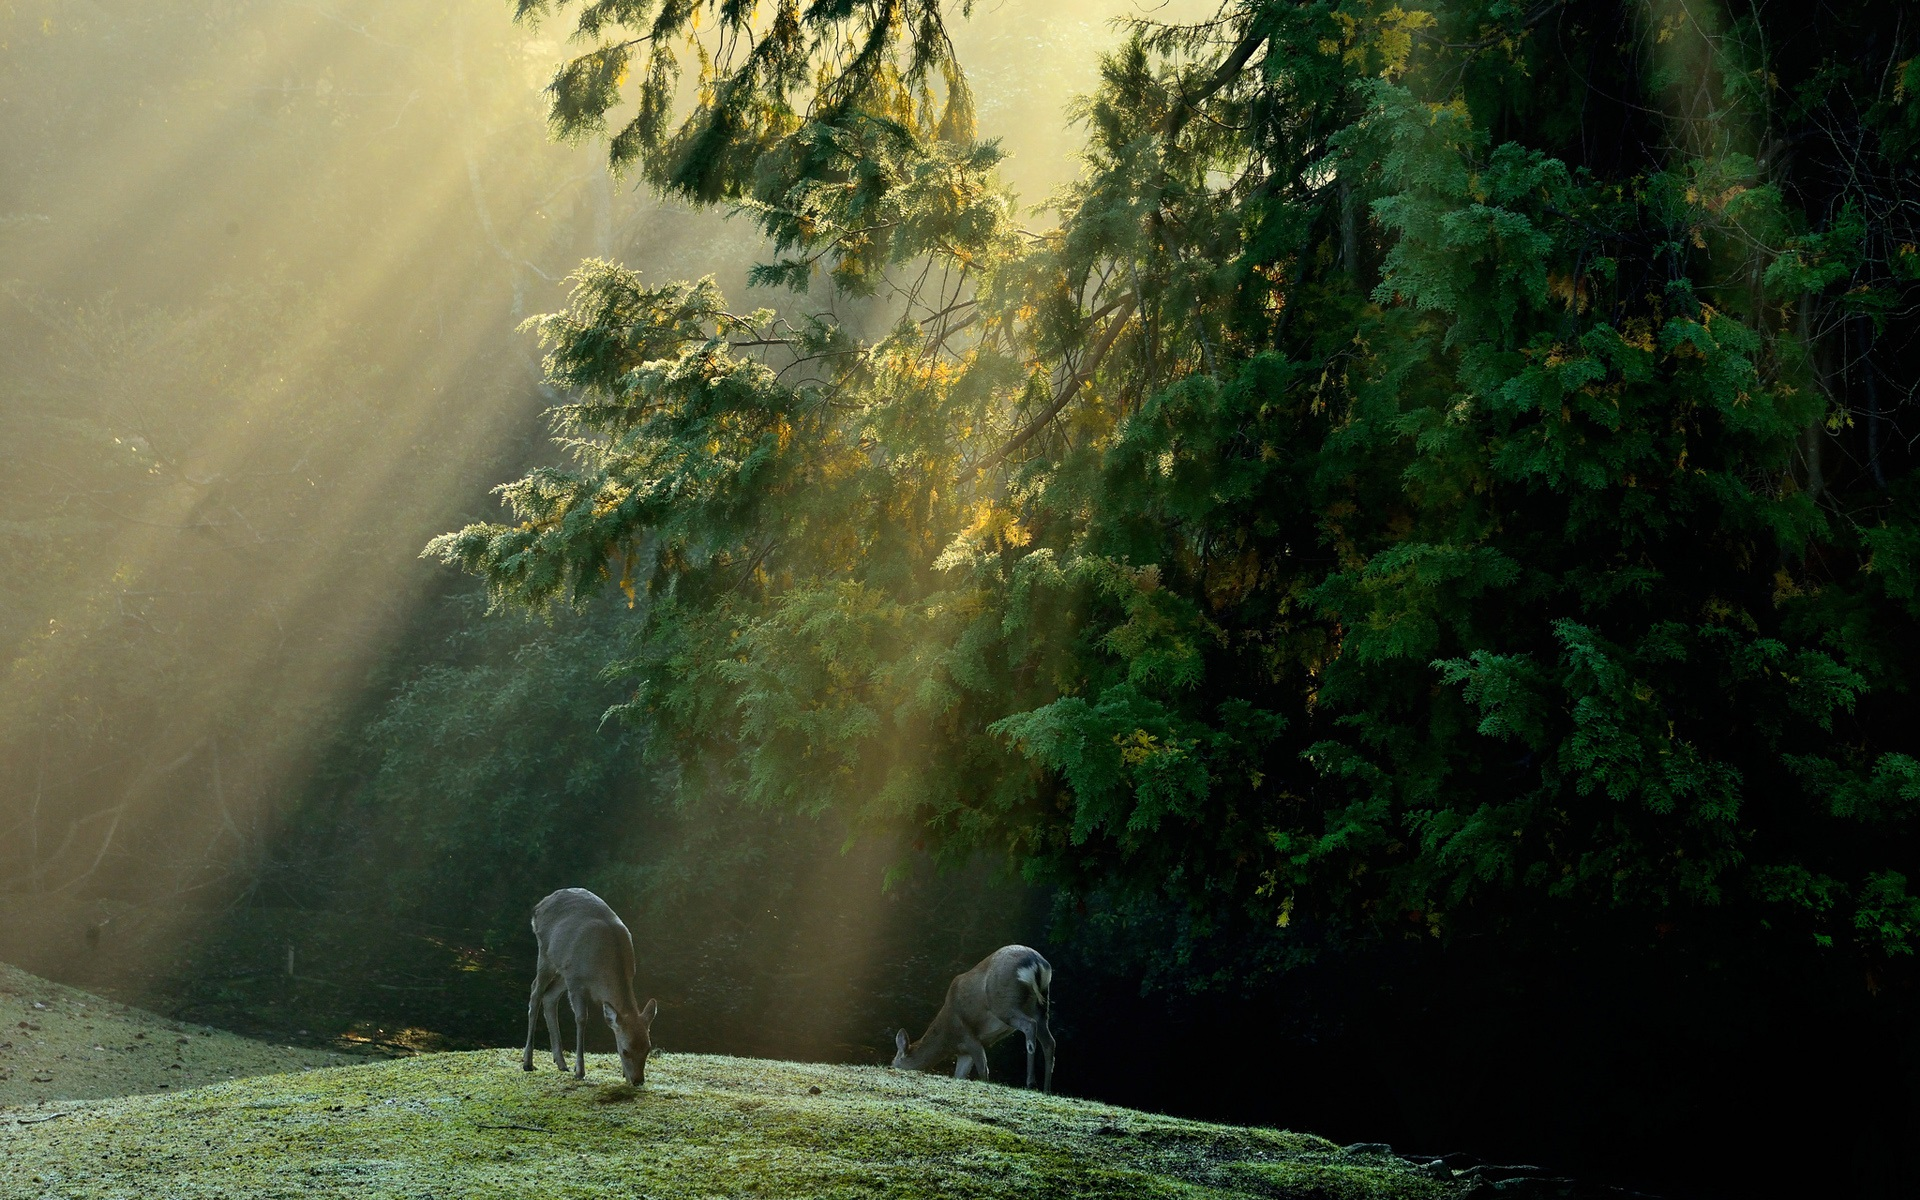 forest_trees_meadow_deer_sun_rays_1920x1200.jpg